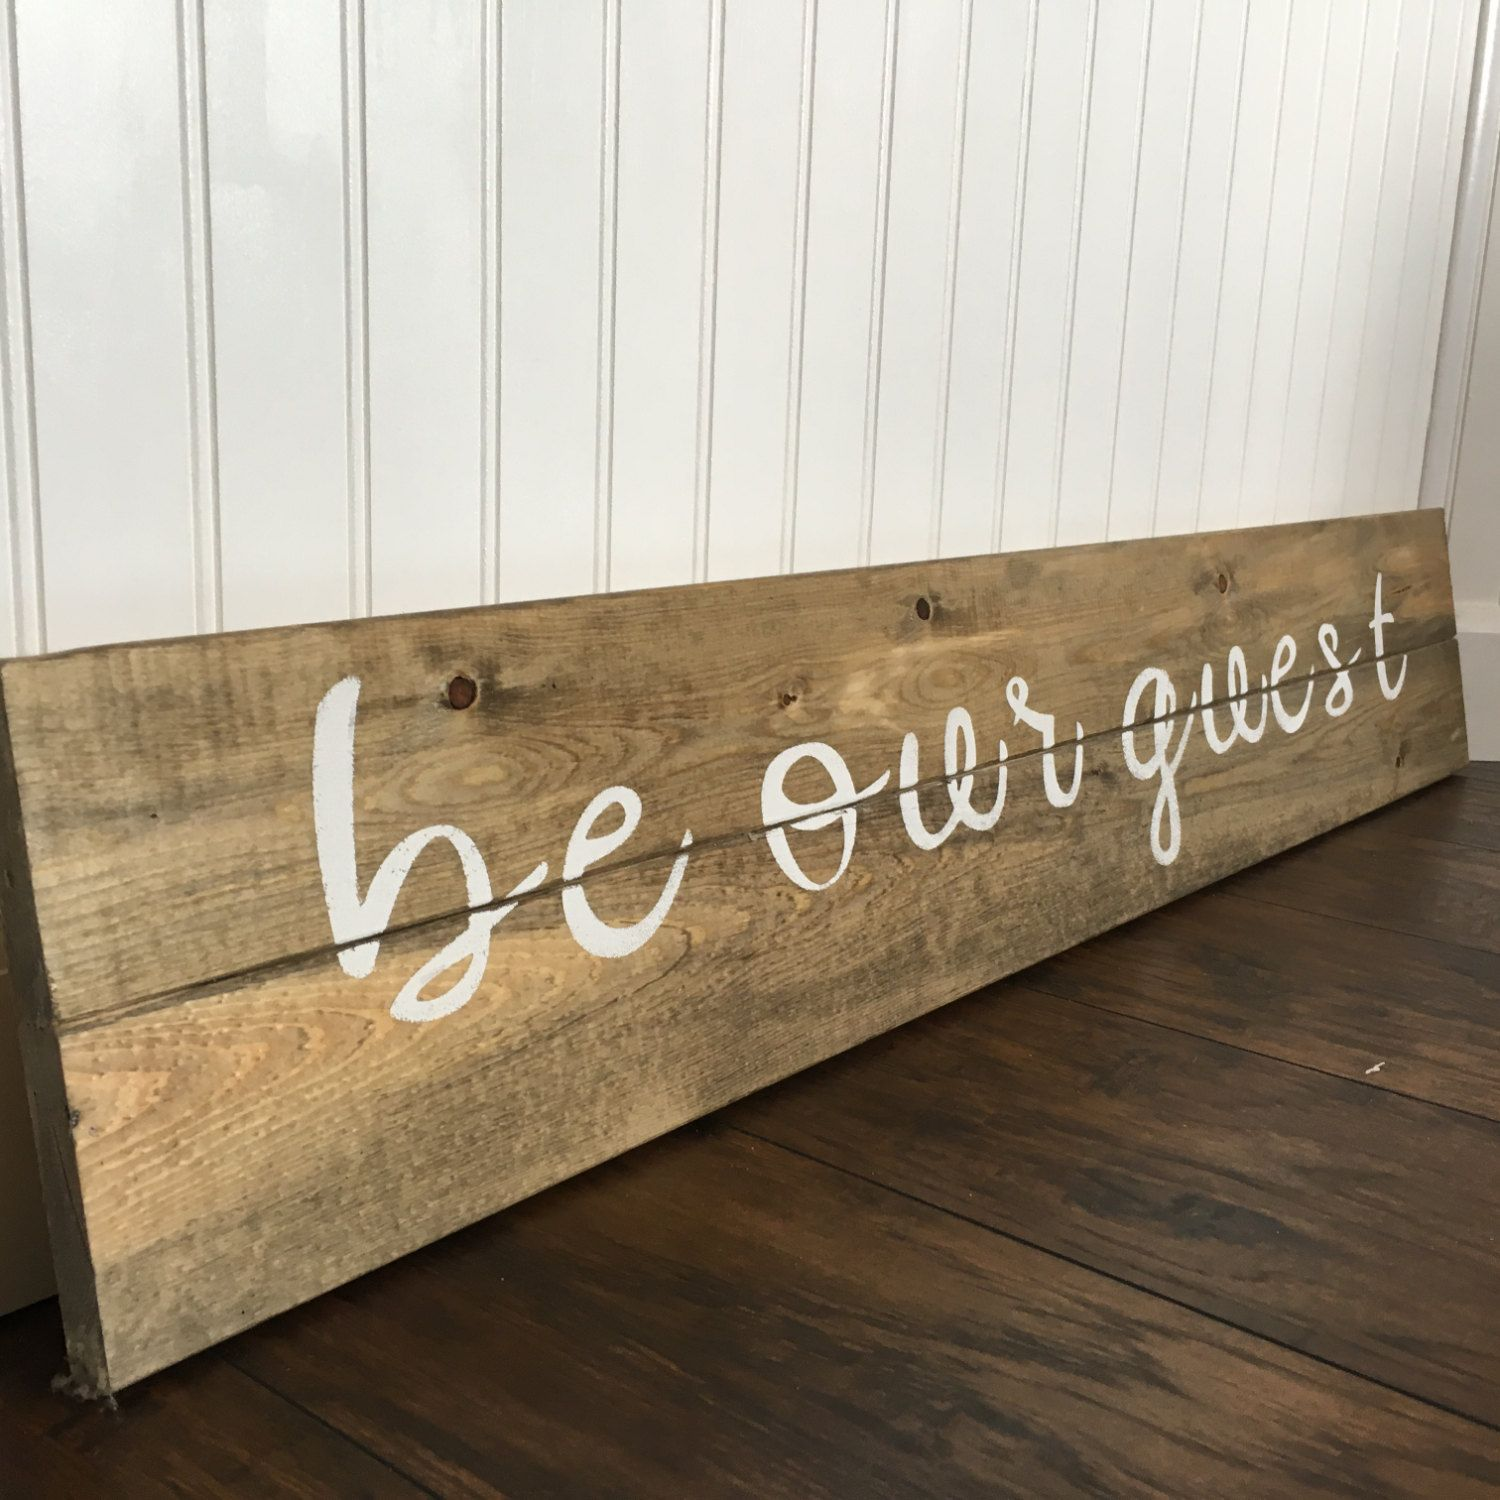 Wall Sign Decor Glamorous Be Our Guest Sign Guest Bedroom Rustic Wall Decor Rustic Decor Design Inspiration